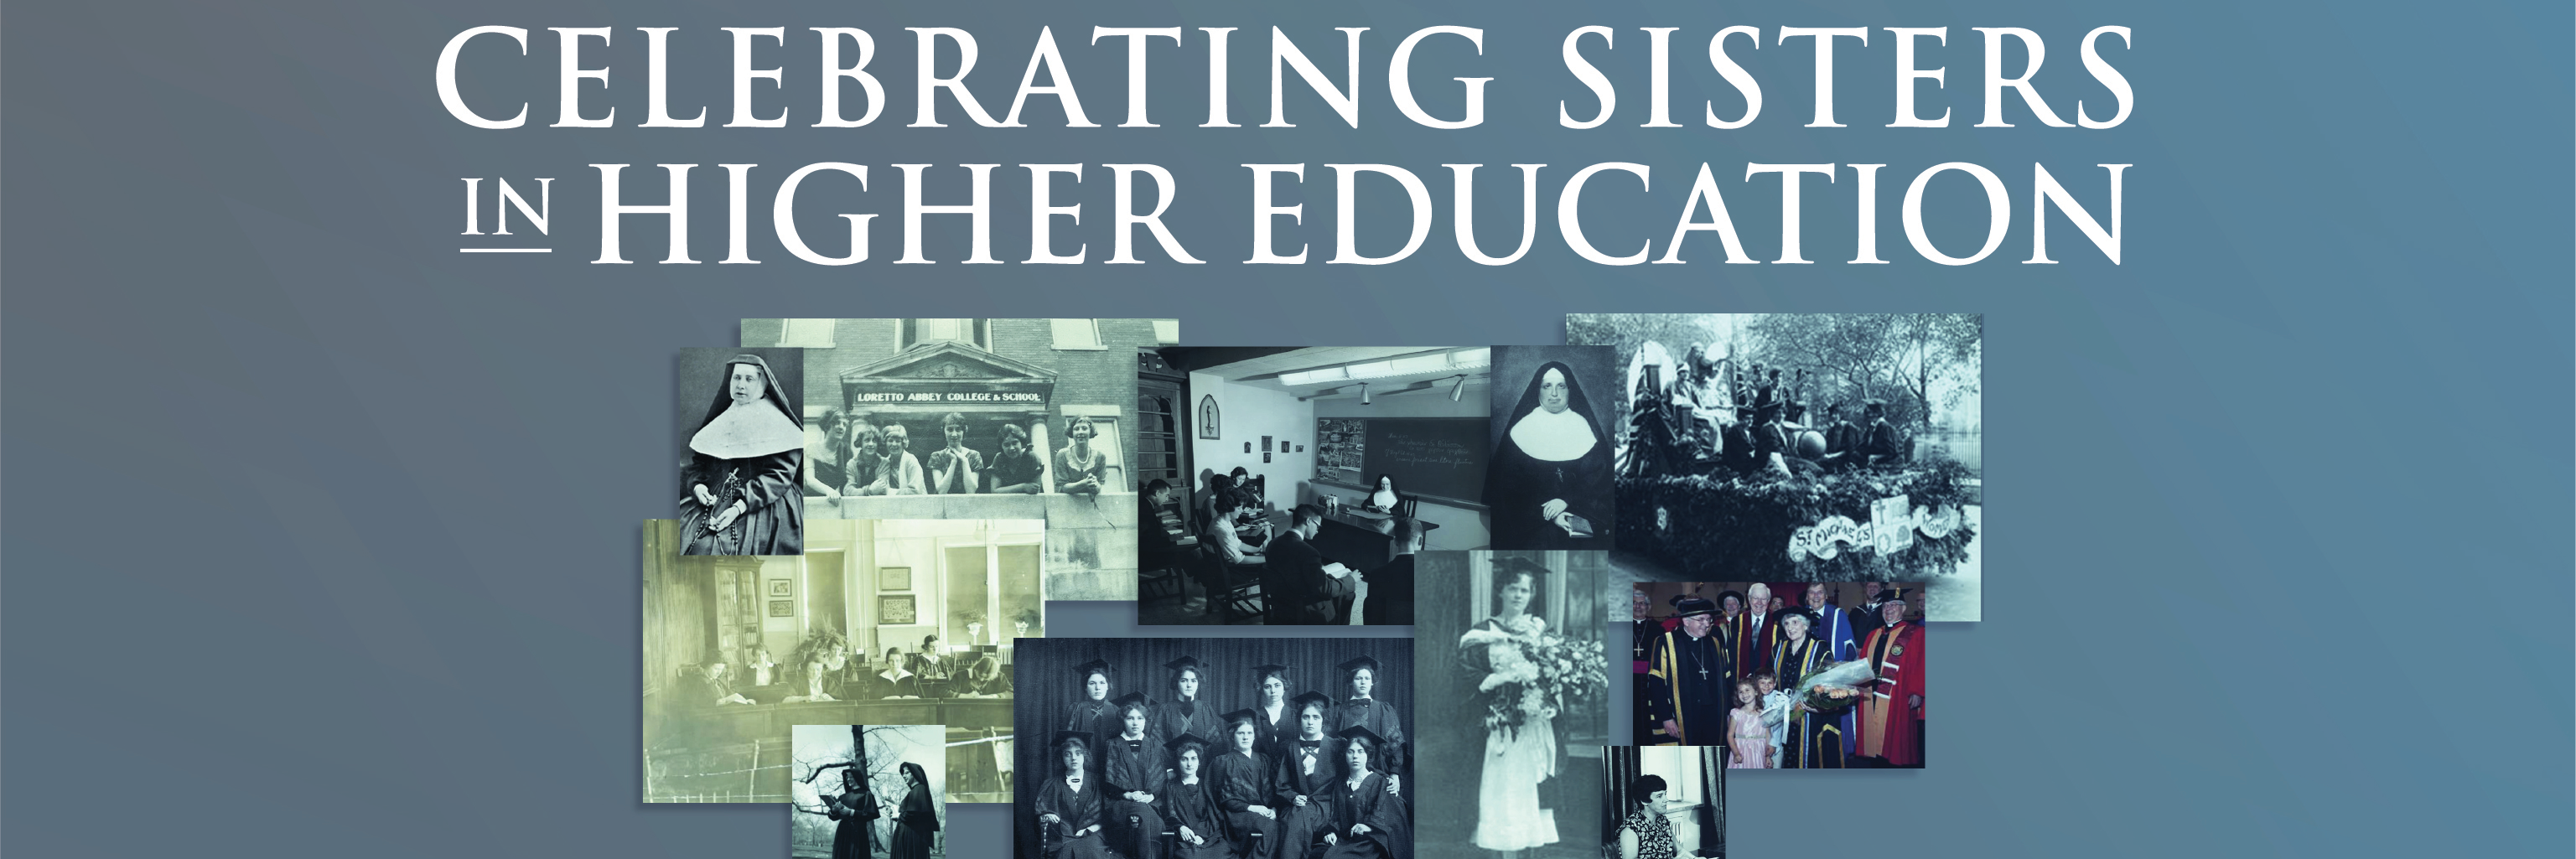 Celebrating Sisters in Higher Education